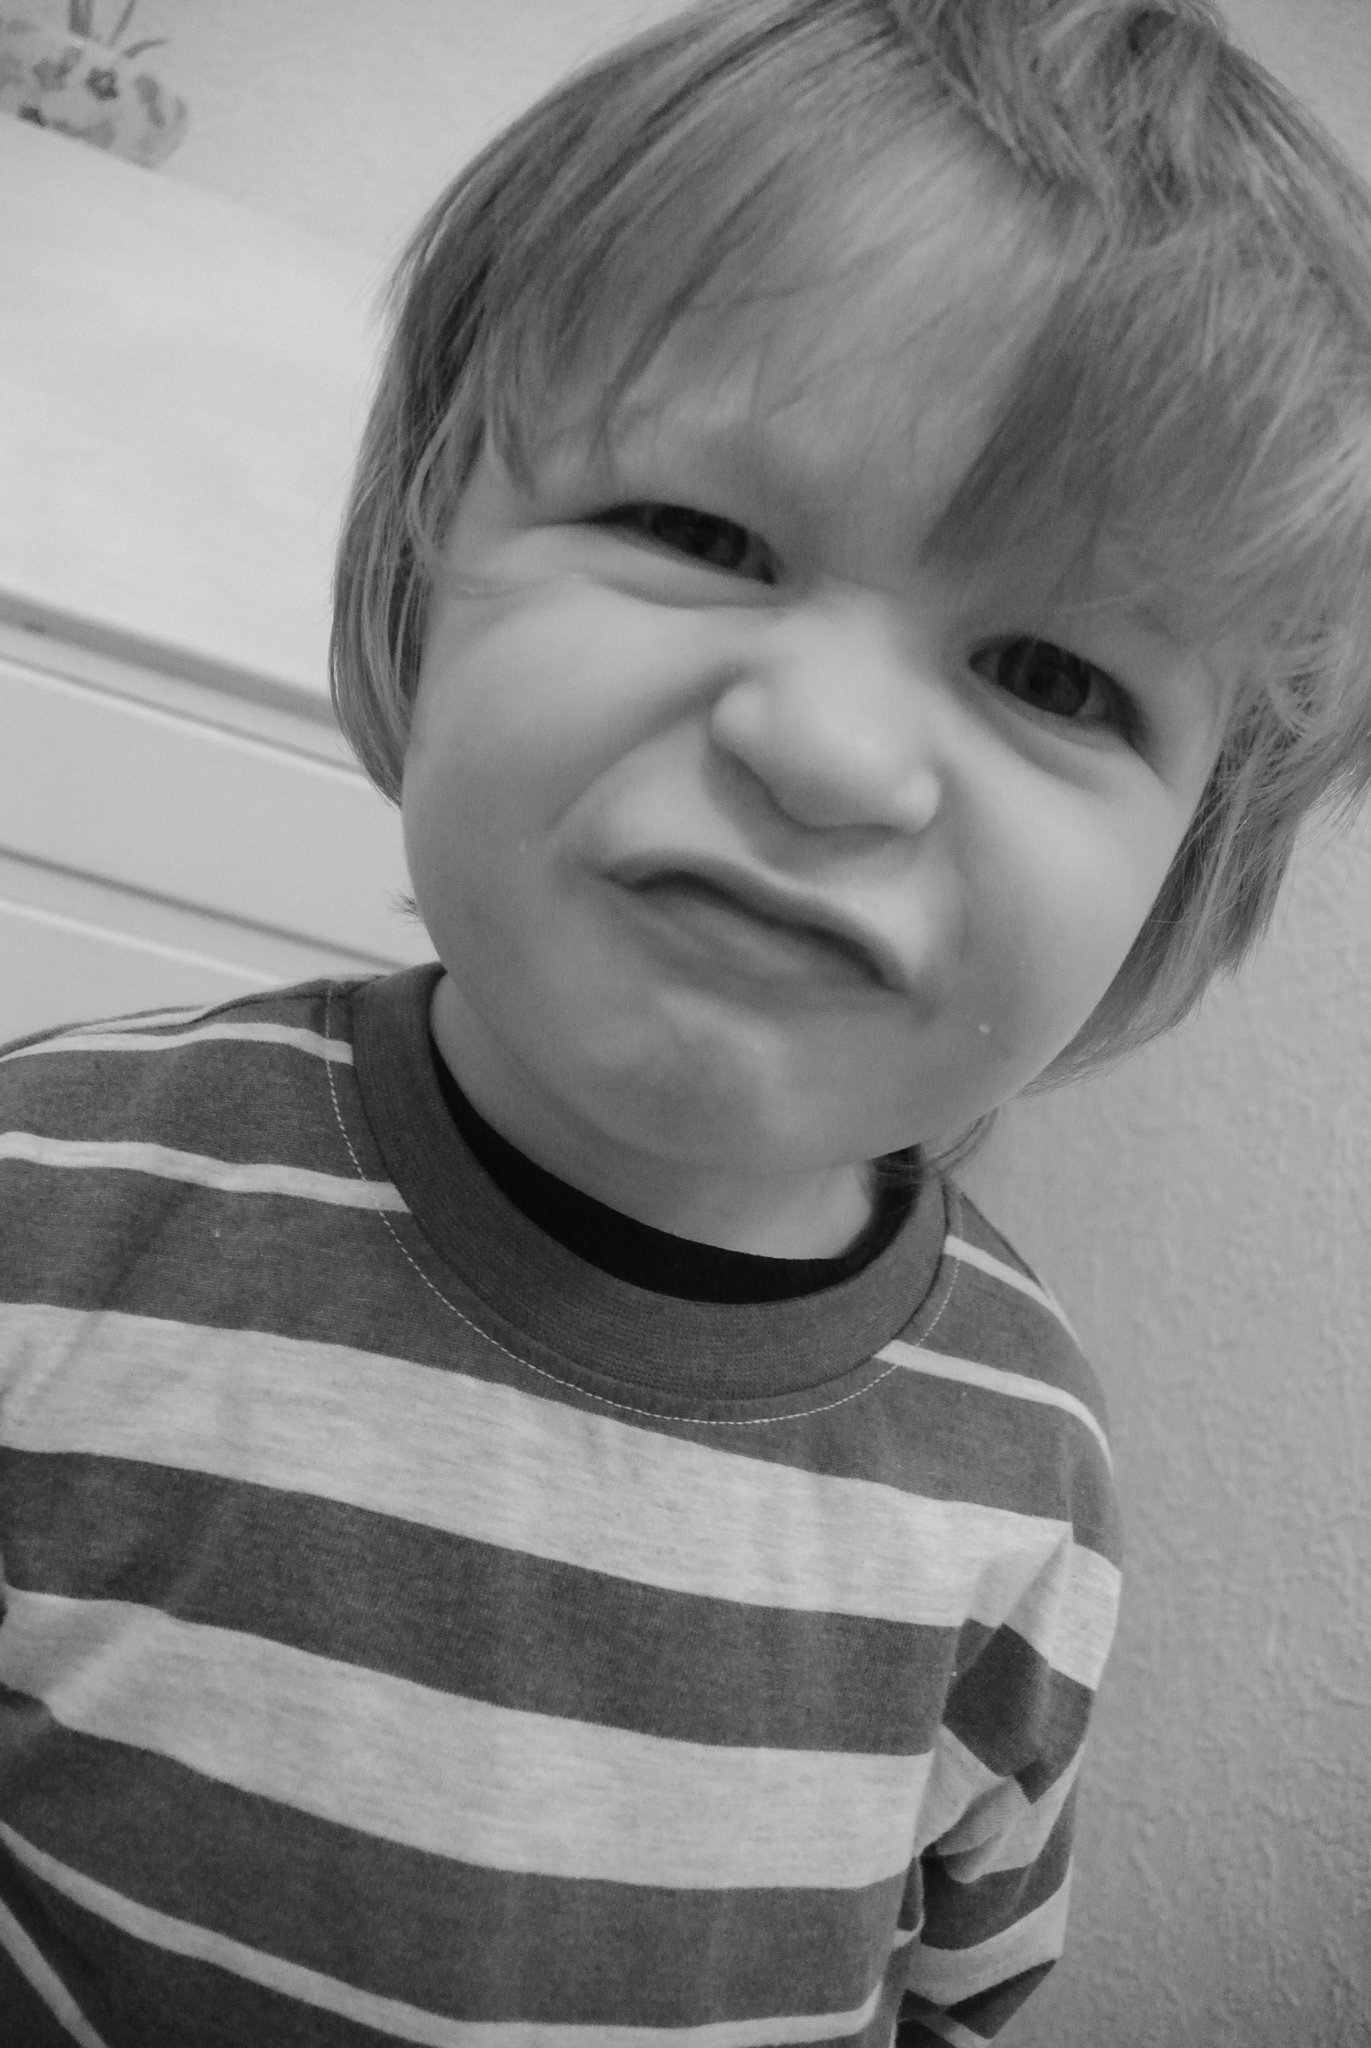 Black and white picture of a four year old boy in a striped top pulling a grumpy face.